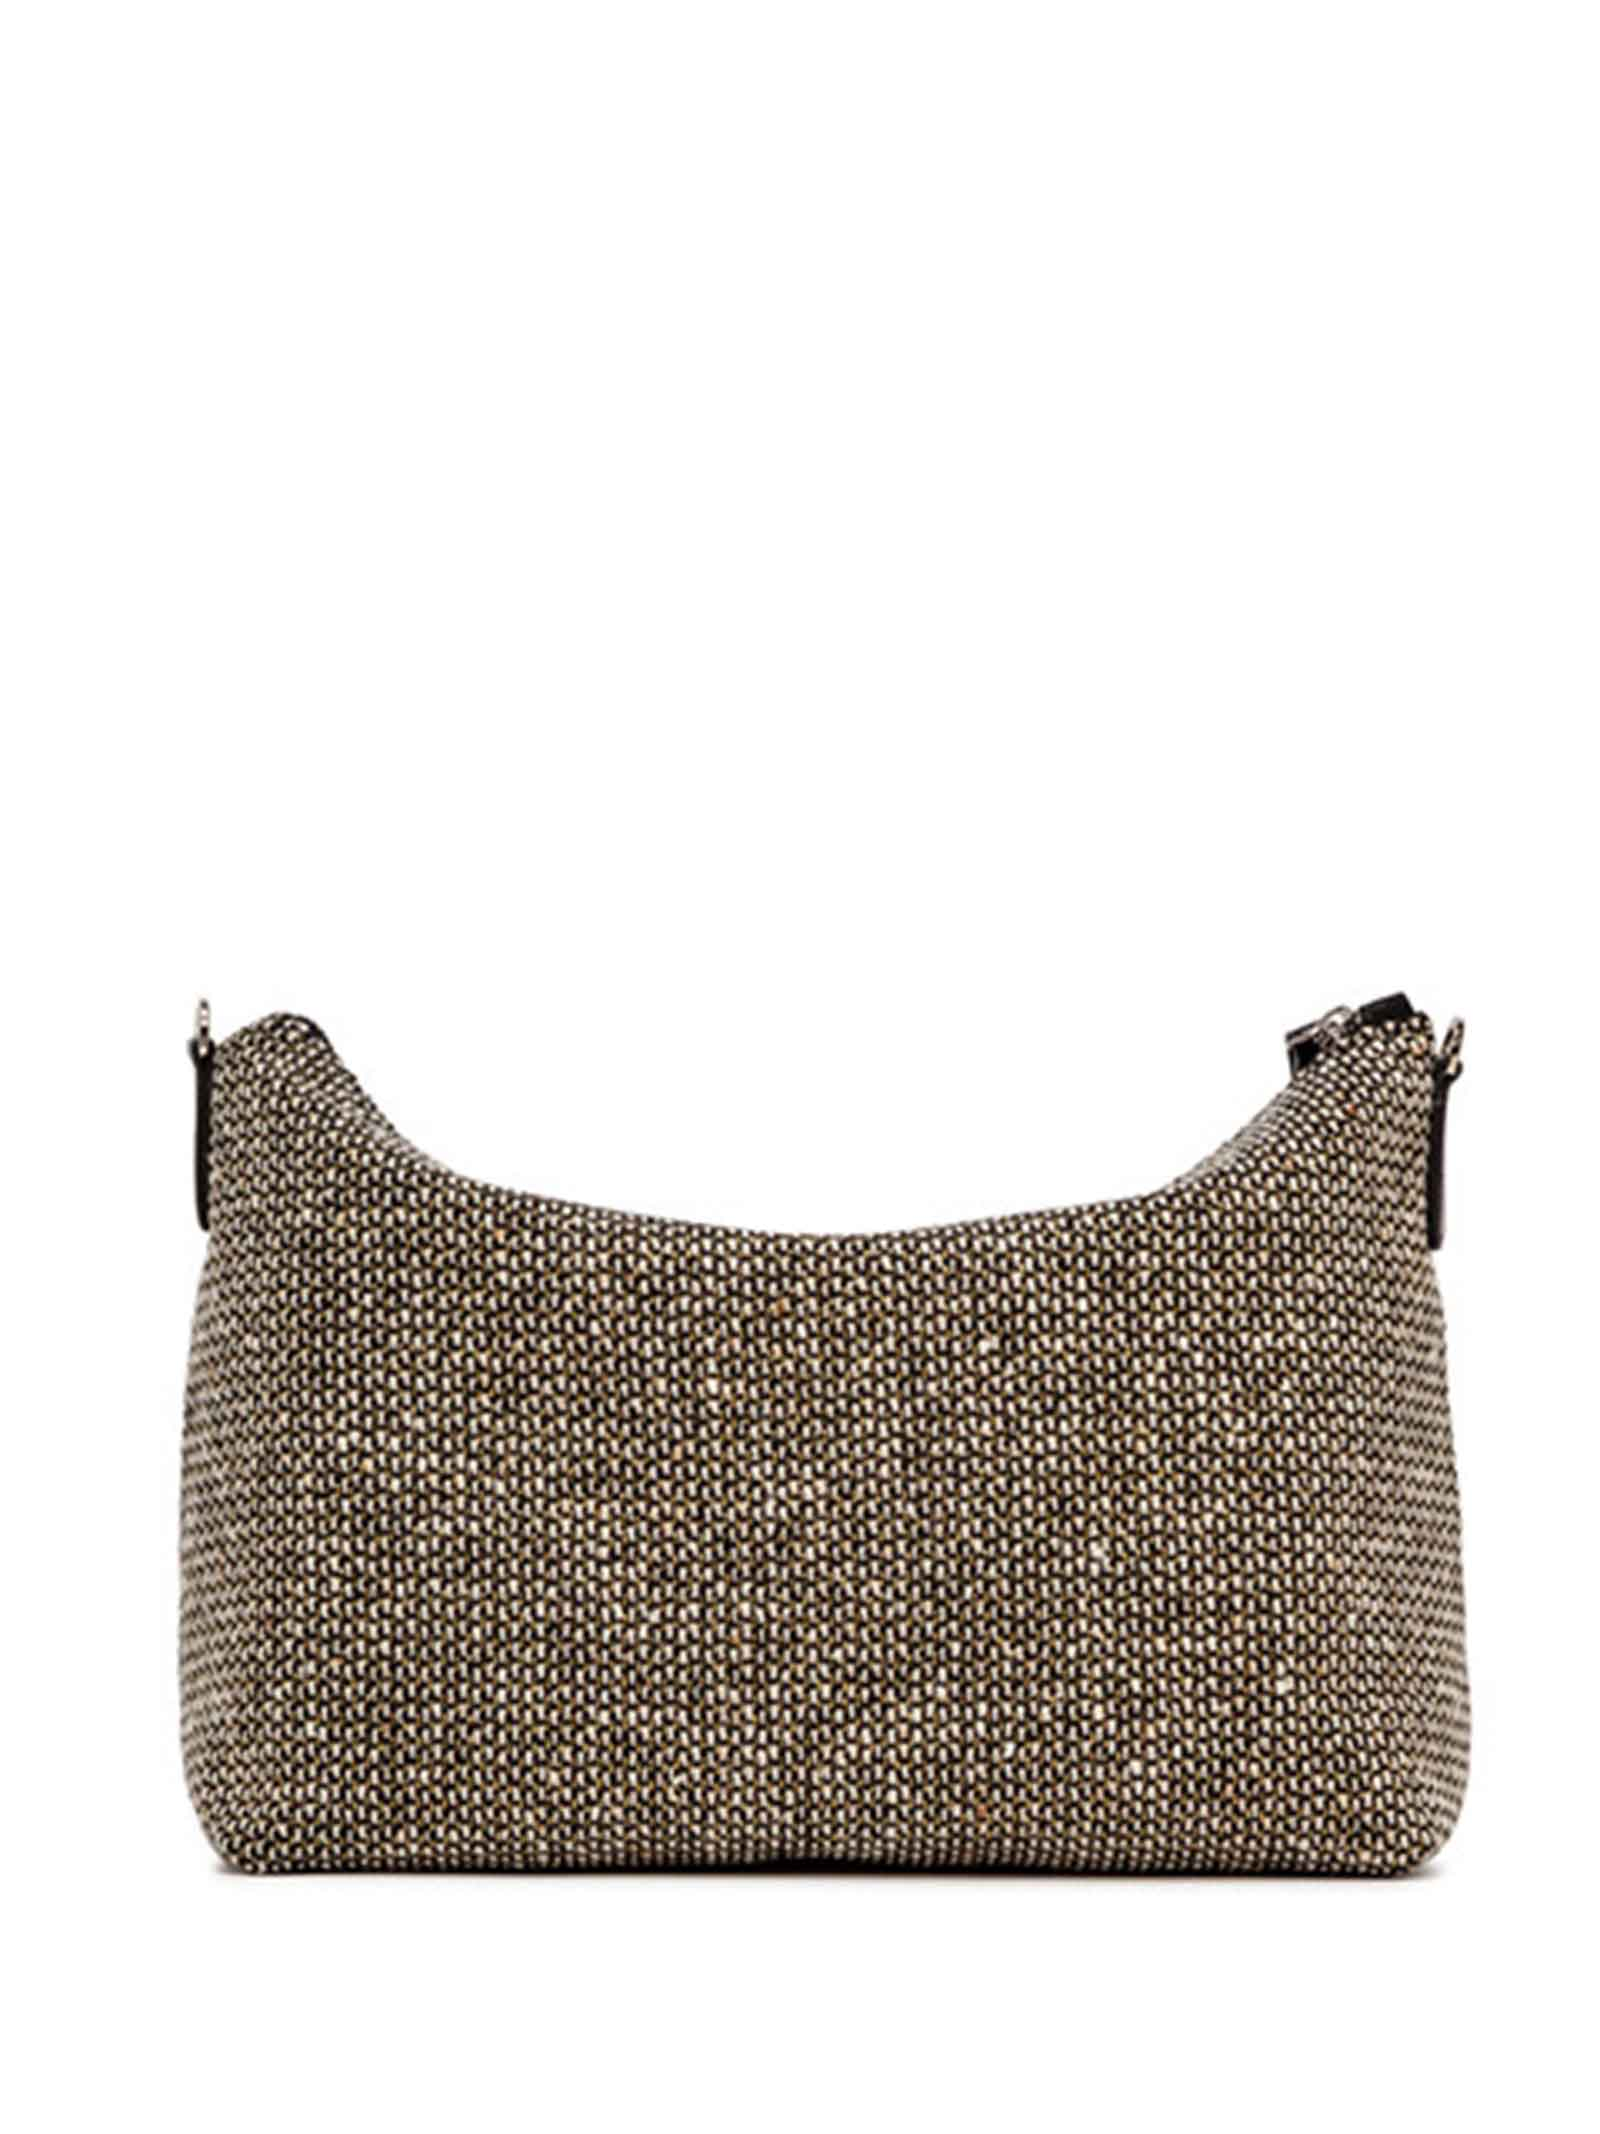 Women's Accessories Empty Bag in Tan Fabric with Leather Shoulder Strap and Bracelet Gianni Chiarini | Bags and backpacks | SB9391206